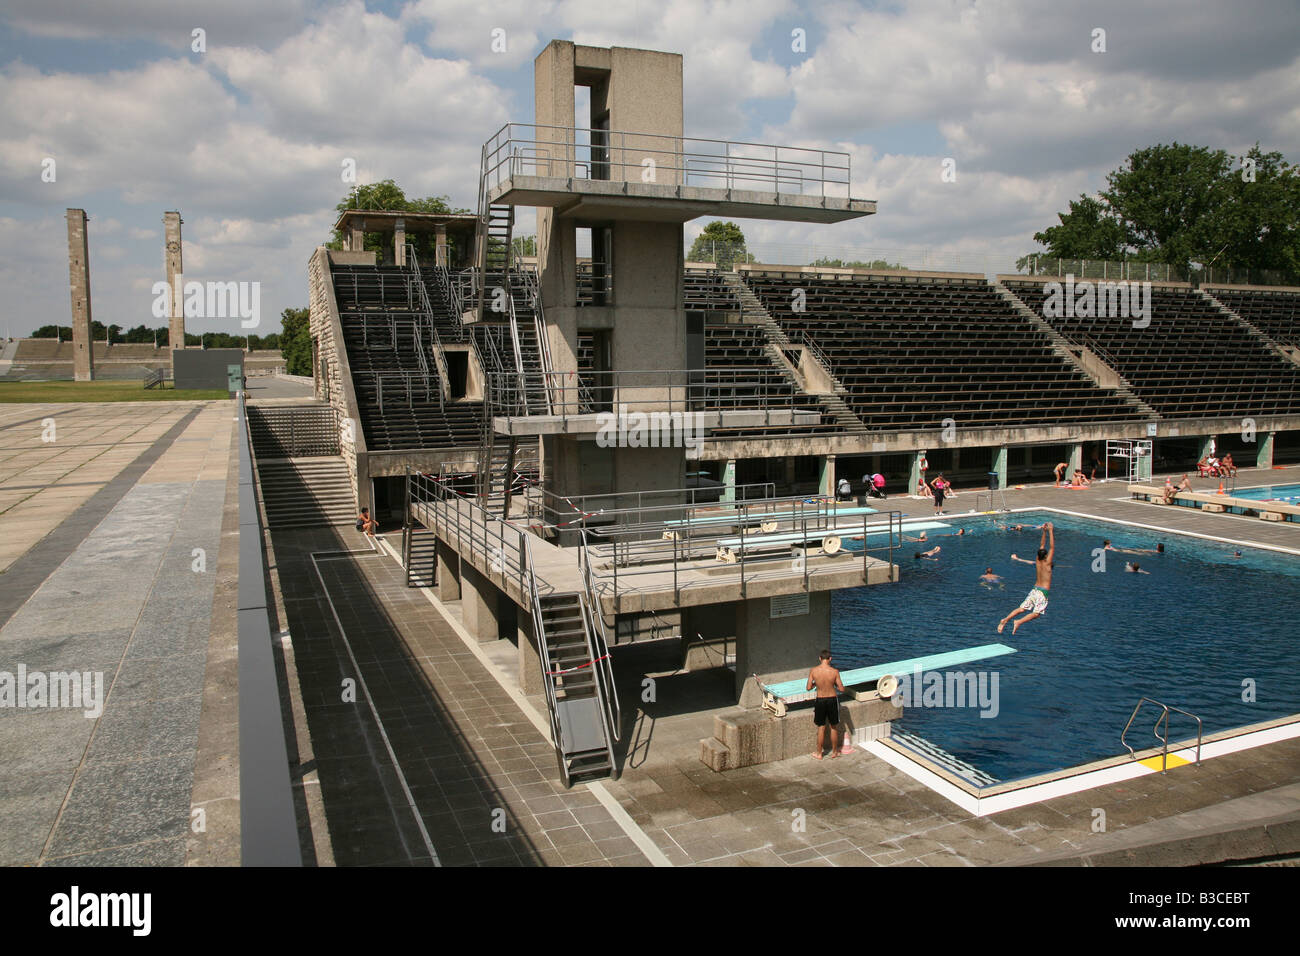 Swimmingpool Berlin Olympic Swimming Pool In The Area Of The Olympia Stadium In Berlin